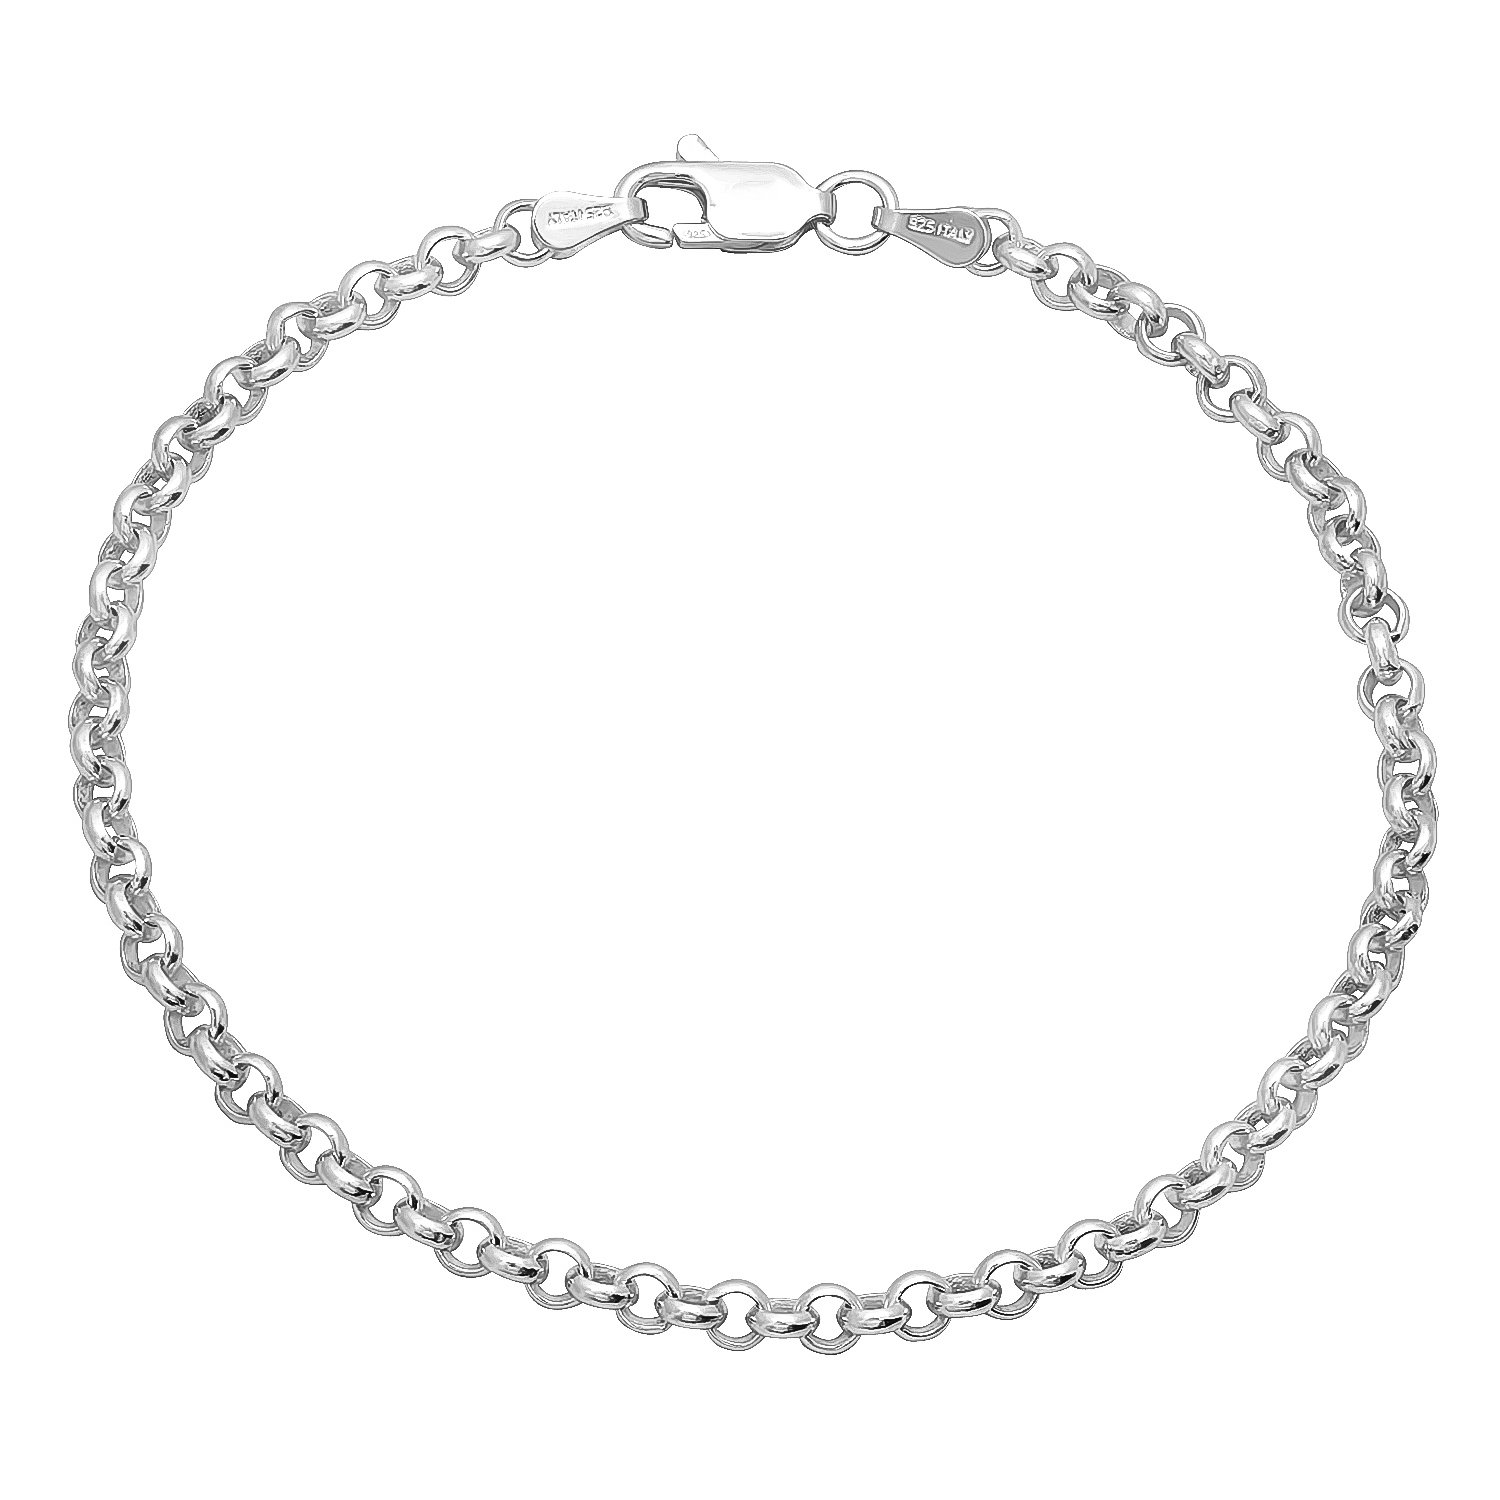 925 Sterling Silver Rhodium Plated 3.2mm Rolo Chain or Bracelet Made in Italy Jewelry Cleaning Cloth